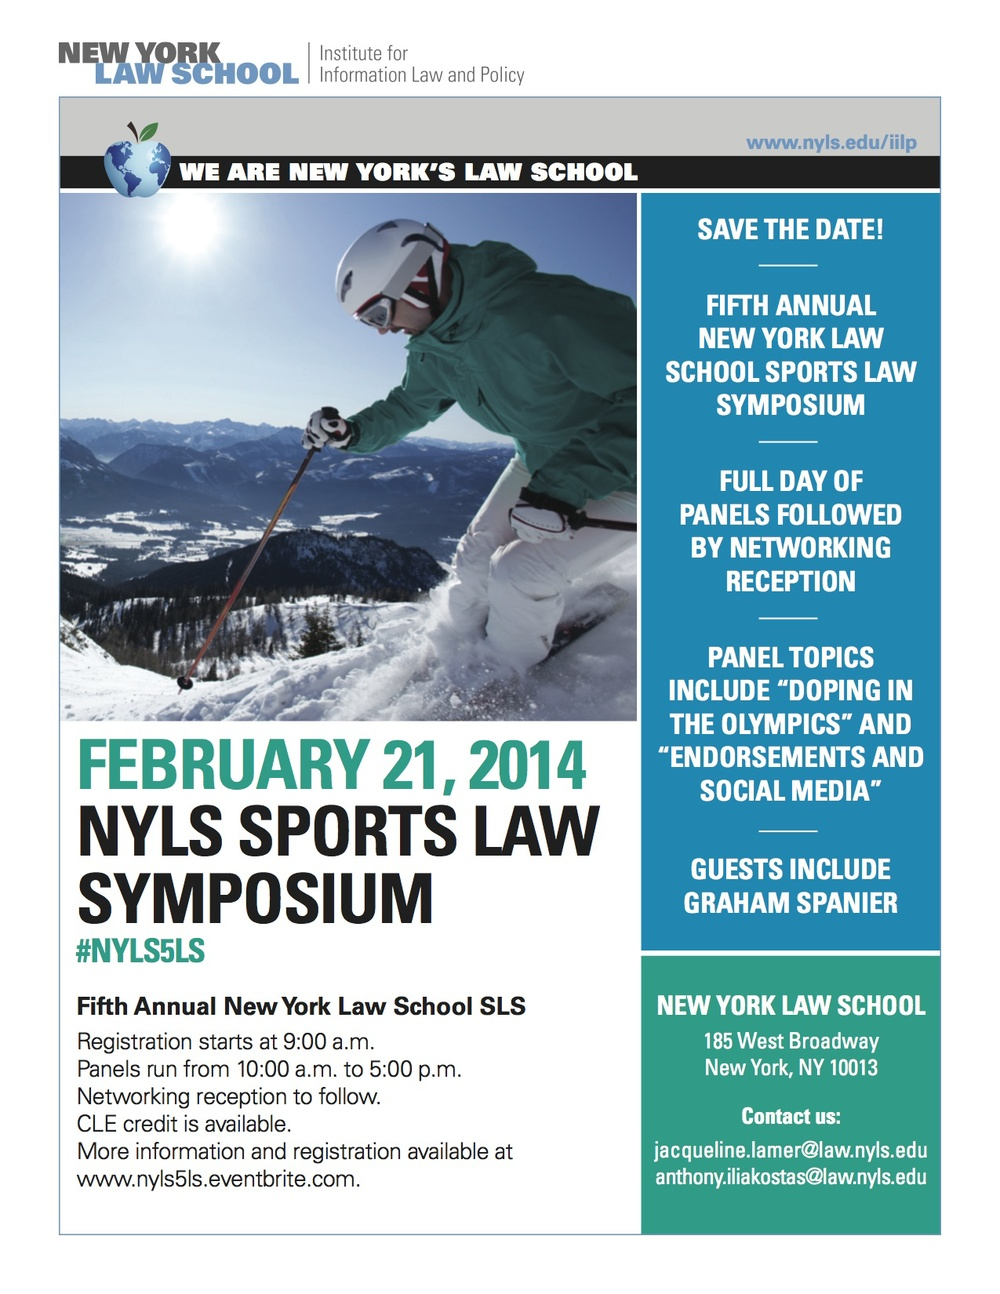 IILP Sports Law Symposium Save the Date.jpg